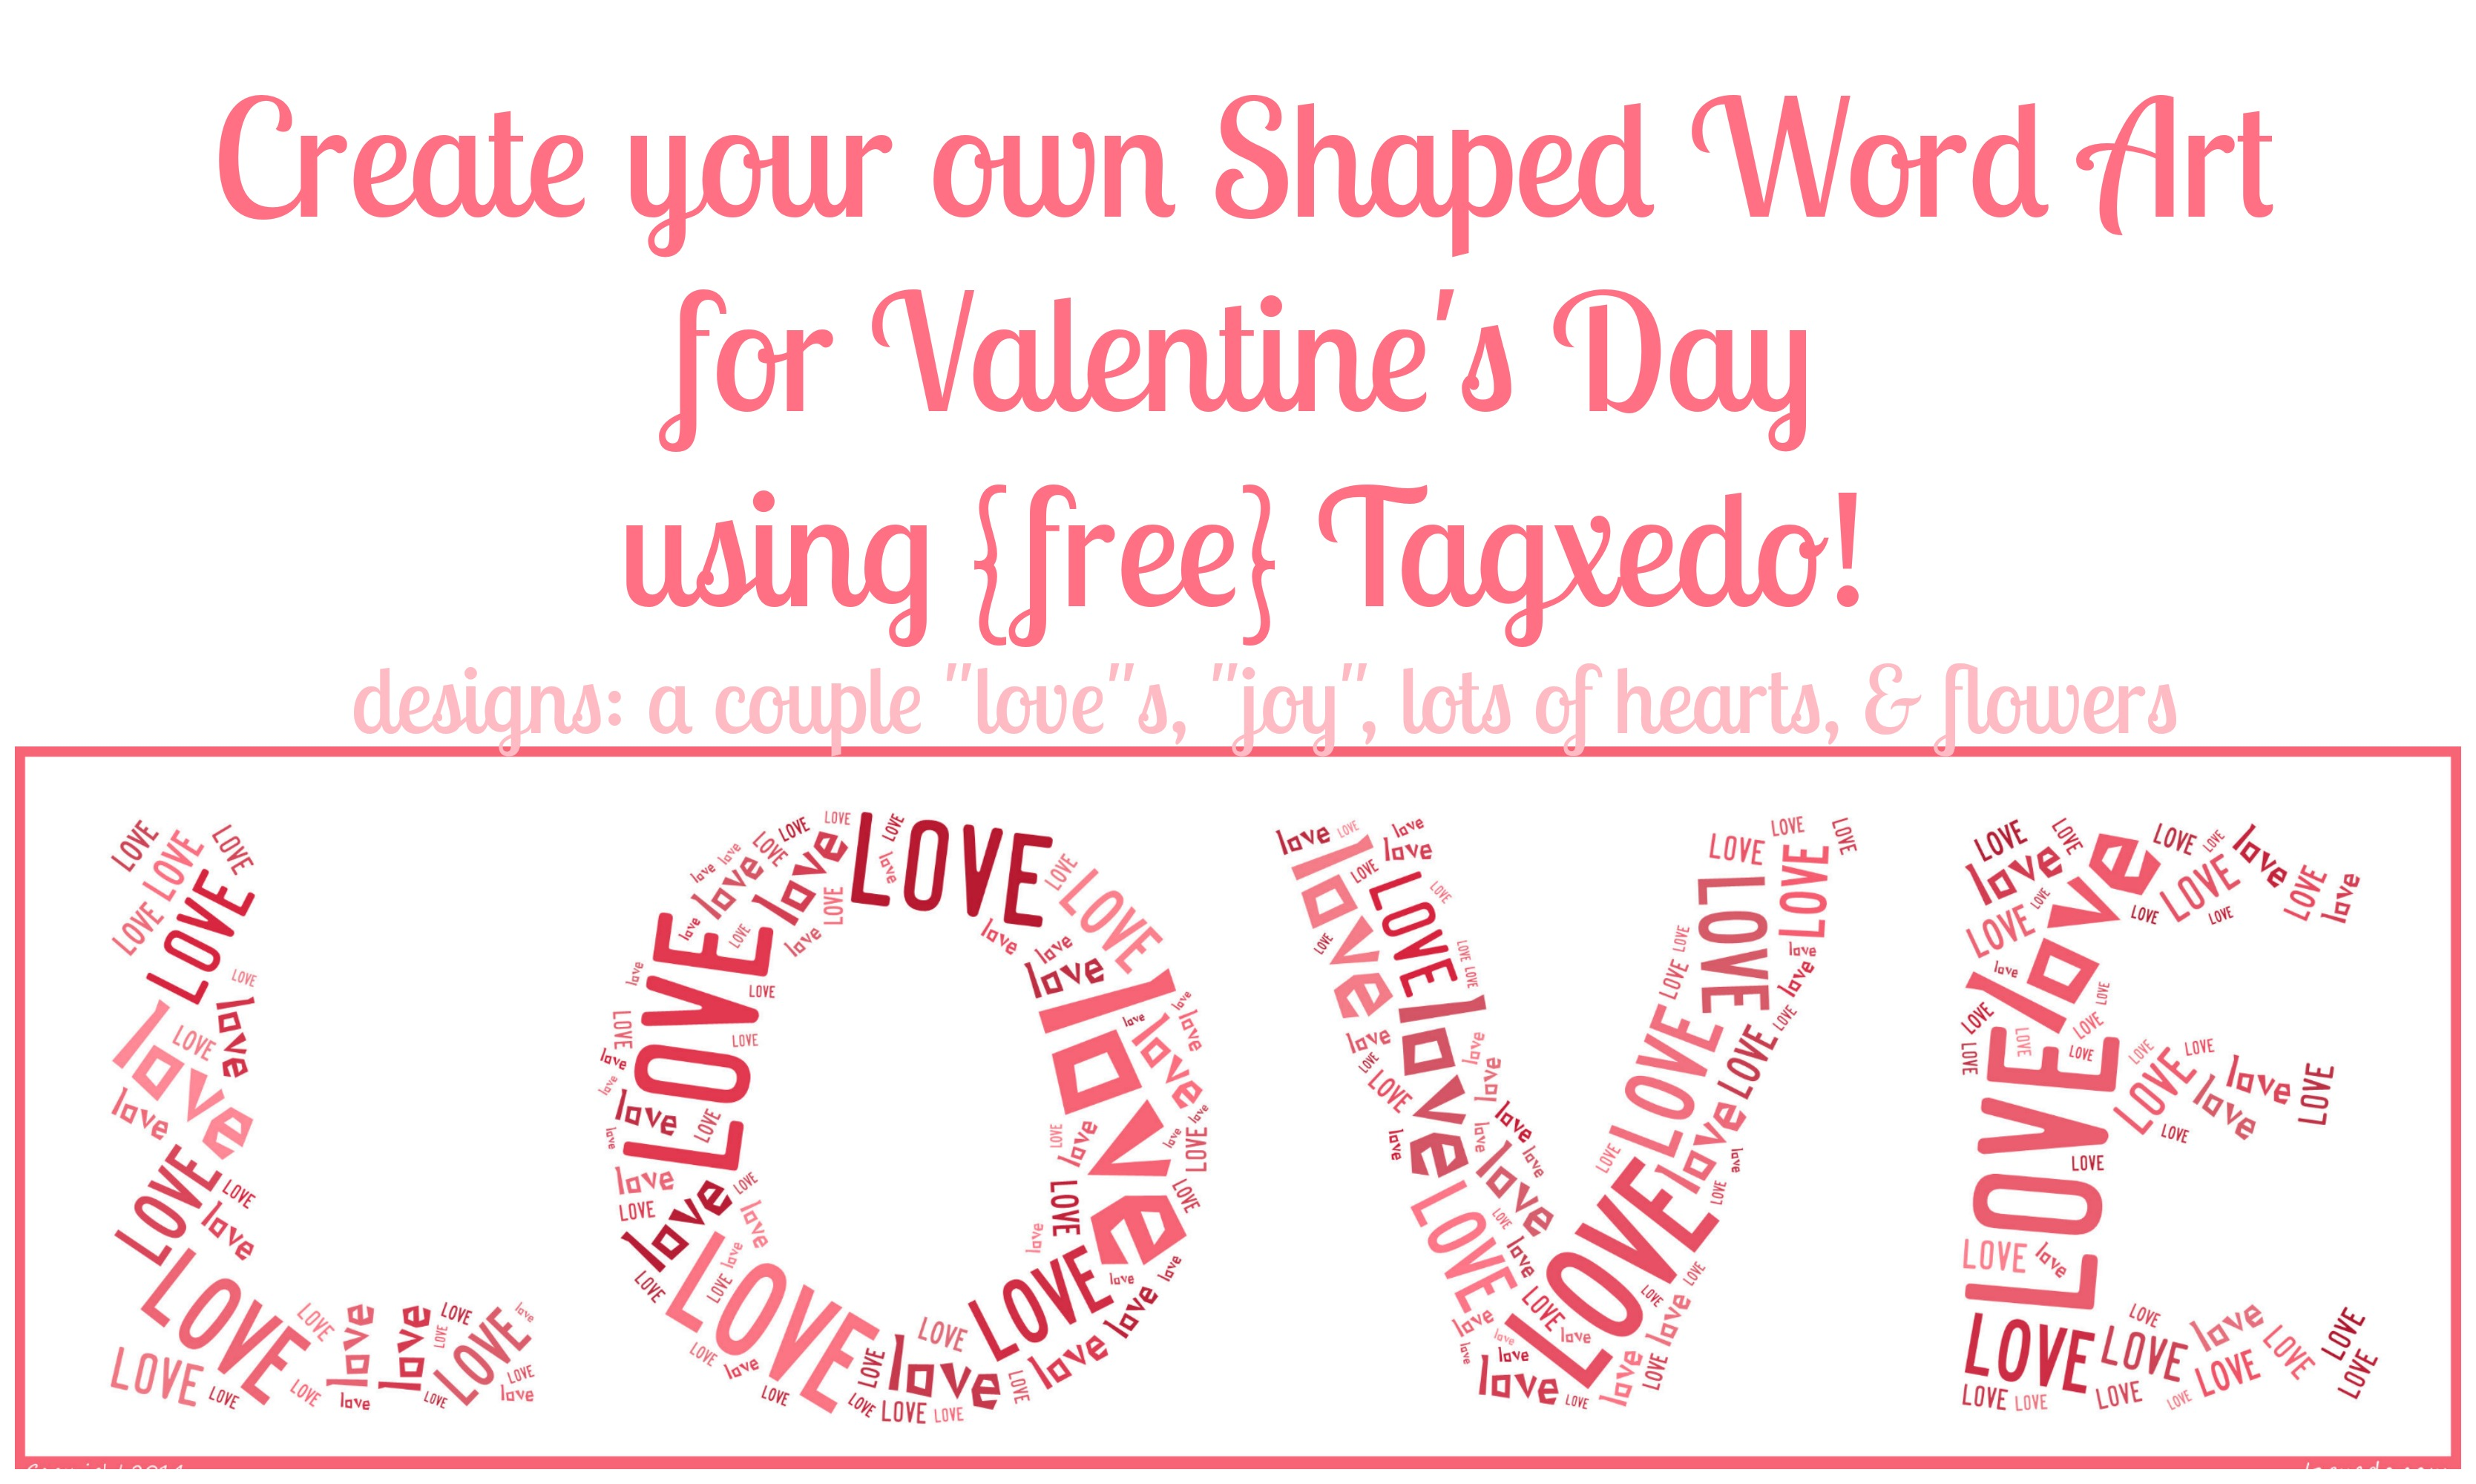 Free Shaped Word Art Online Valentines Day Edition